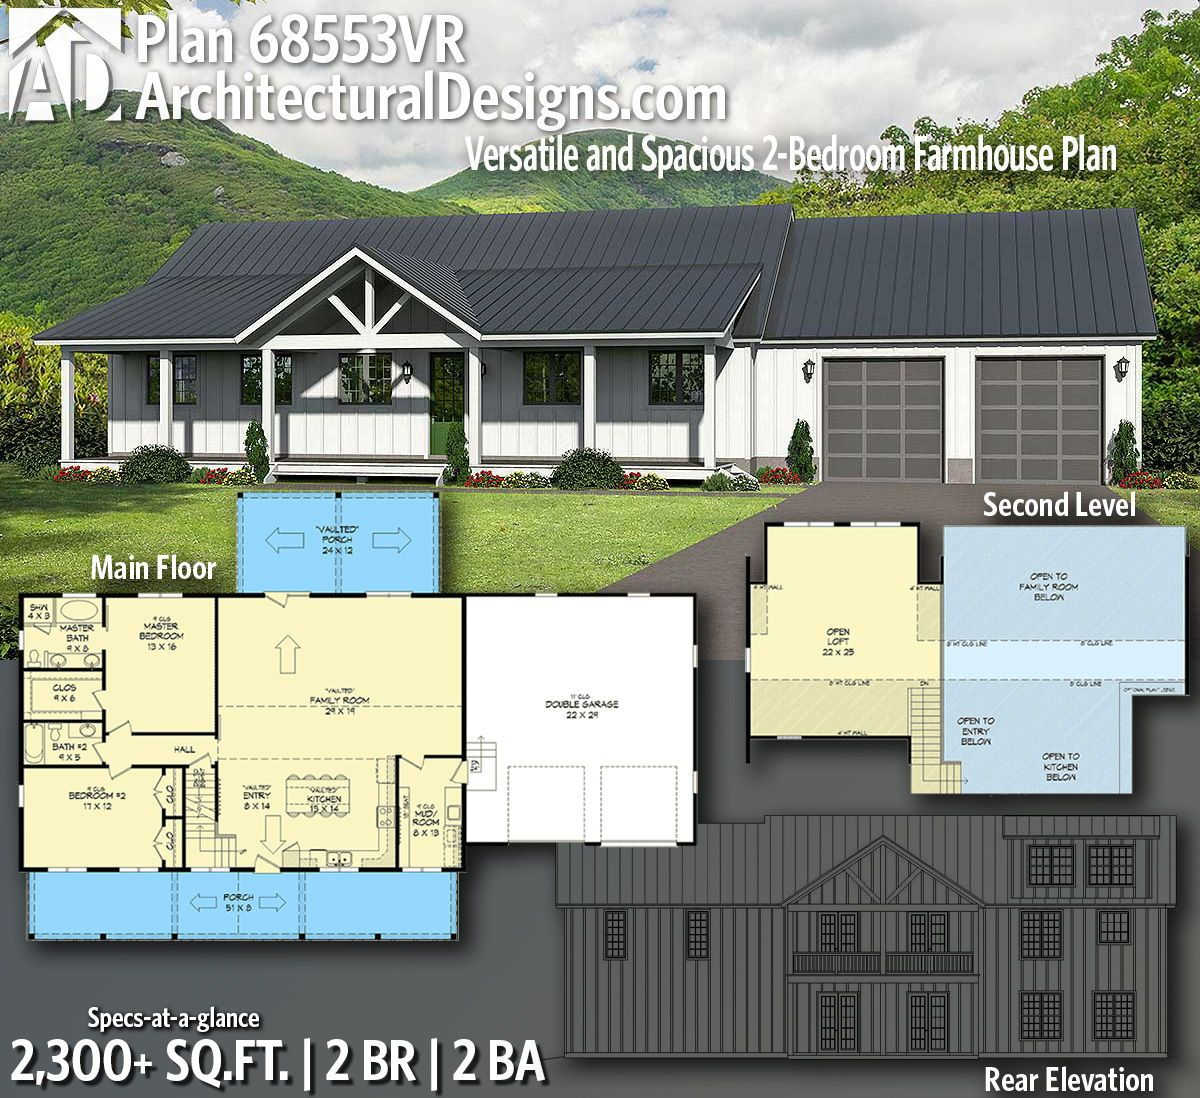 Plan 68553vr Versatile And Spacious 2 Bedroom Farmhouse Plan Farmhouse Plans House Plans Farmhouse House Plans